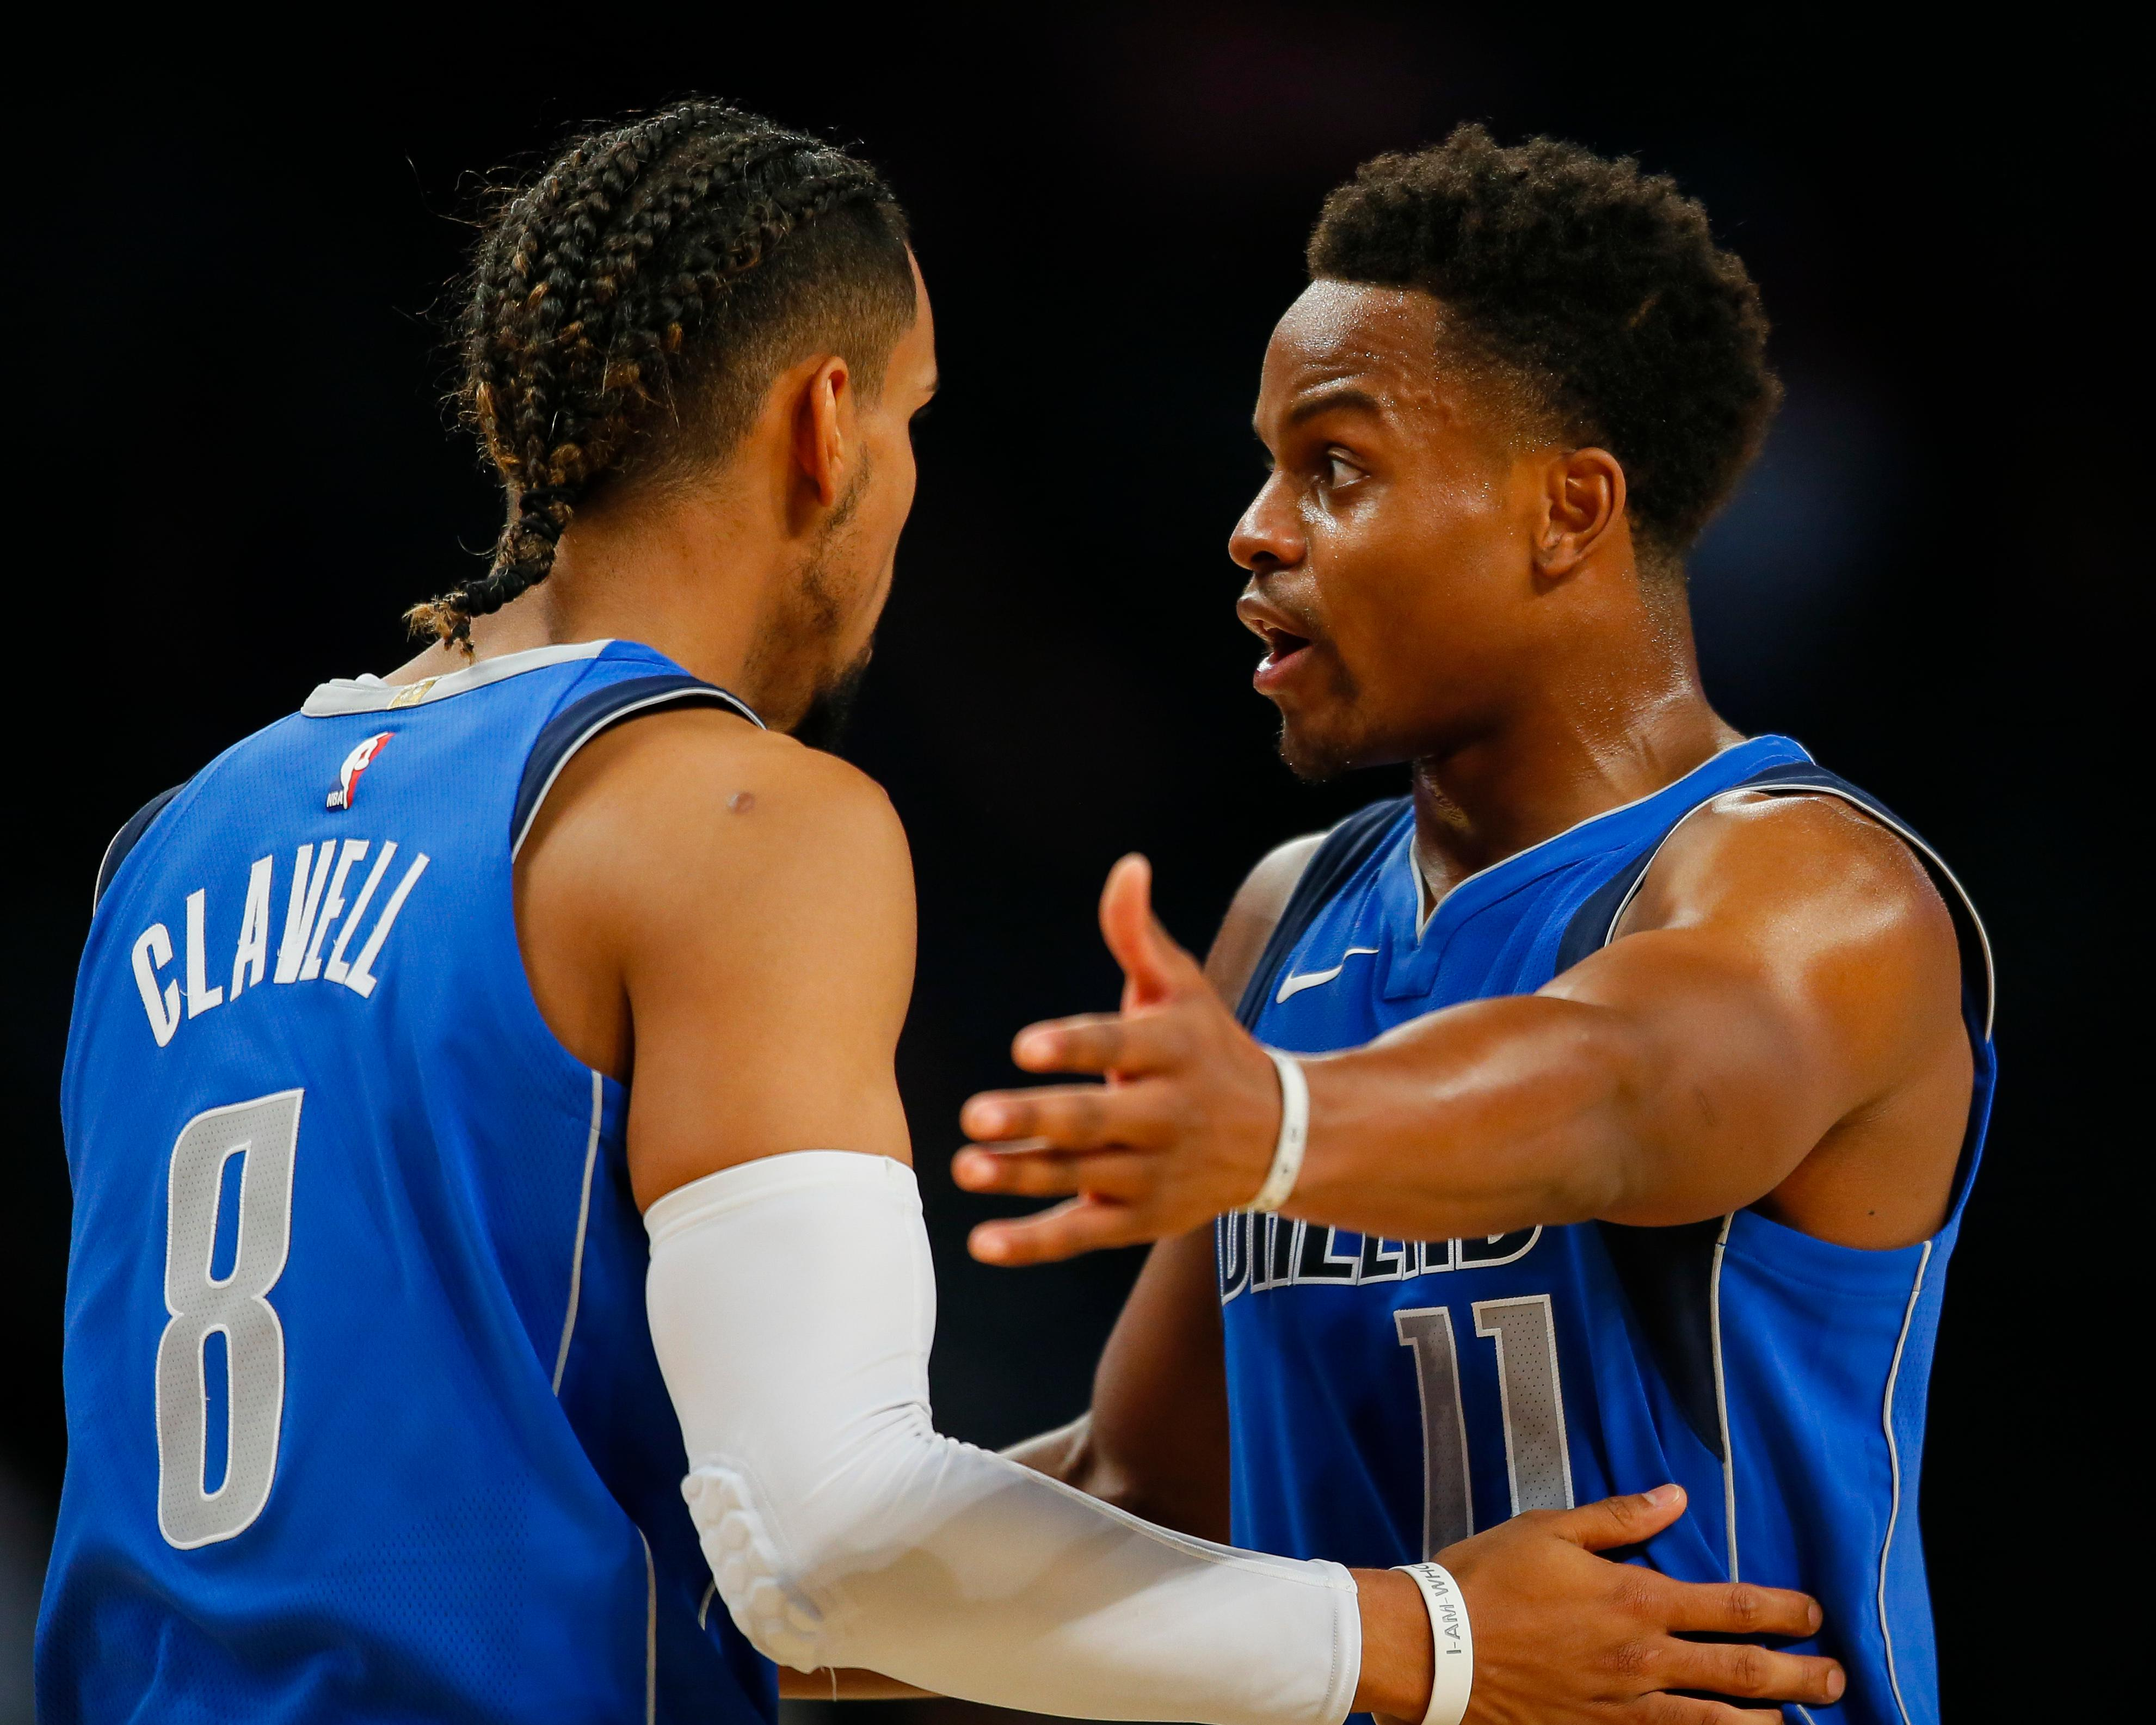 Dallas Mavericks guards Yogi Ferrell (11) and Gian Clavell (8) speak in the first half of an NBA preseason basketball game against the Atlanta Hawks, Thursday, Oct. 12, 2017, in Atlanta. (AP Photo/Todd Kirkland)